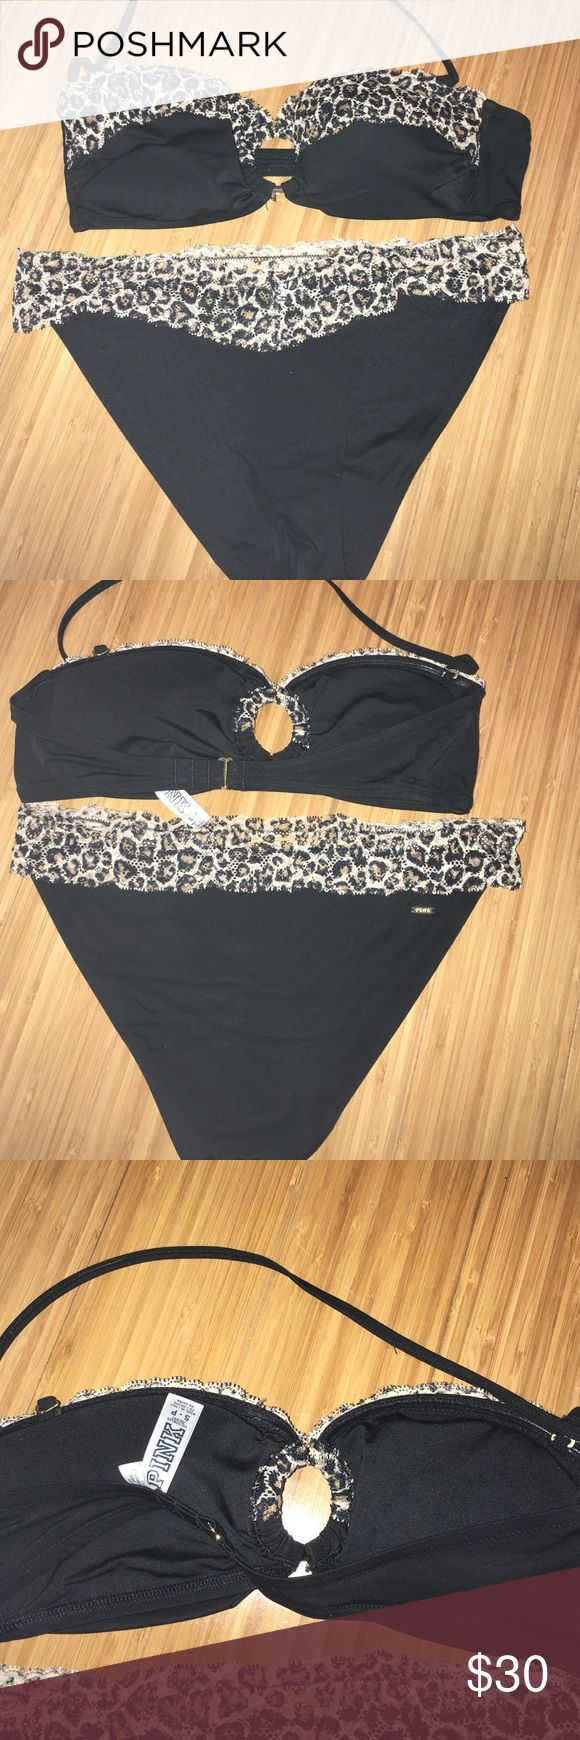 NWOT size small vs pink lace leopard bikini NWOT size small vs pink lace leopard bikini; halter strap is removable and can be a bandeau! Super cute and sexy! PINK Victoria's Secret Swim Bikinis